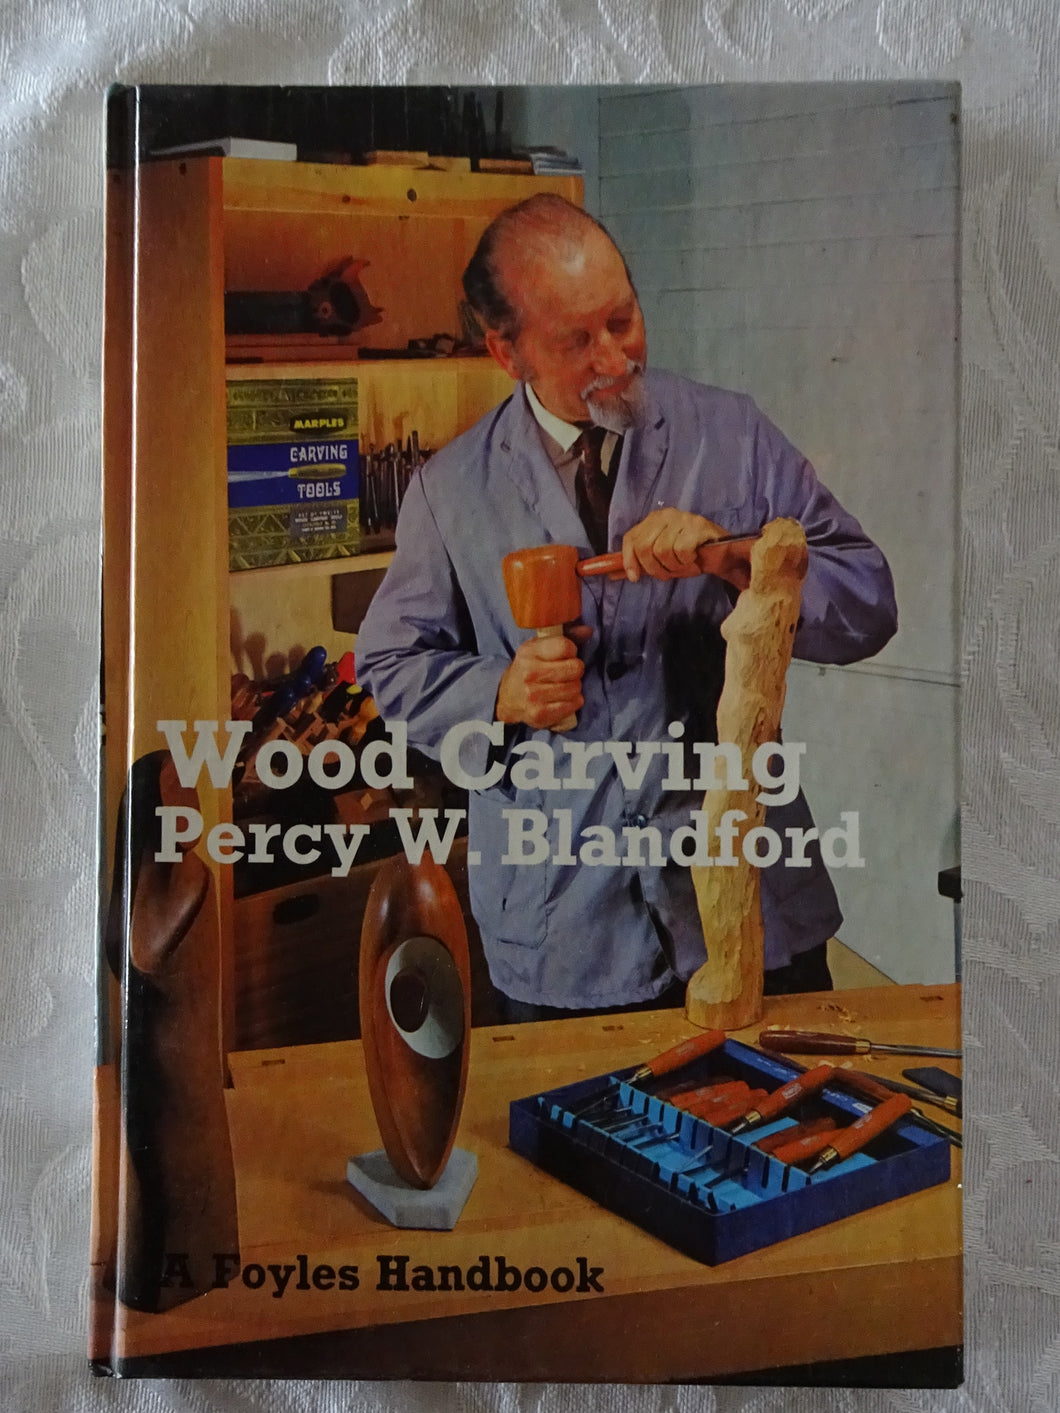 Wood Carving by Percy W. Blandford